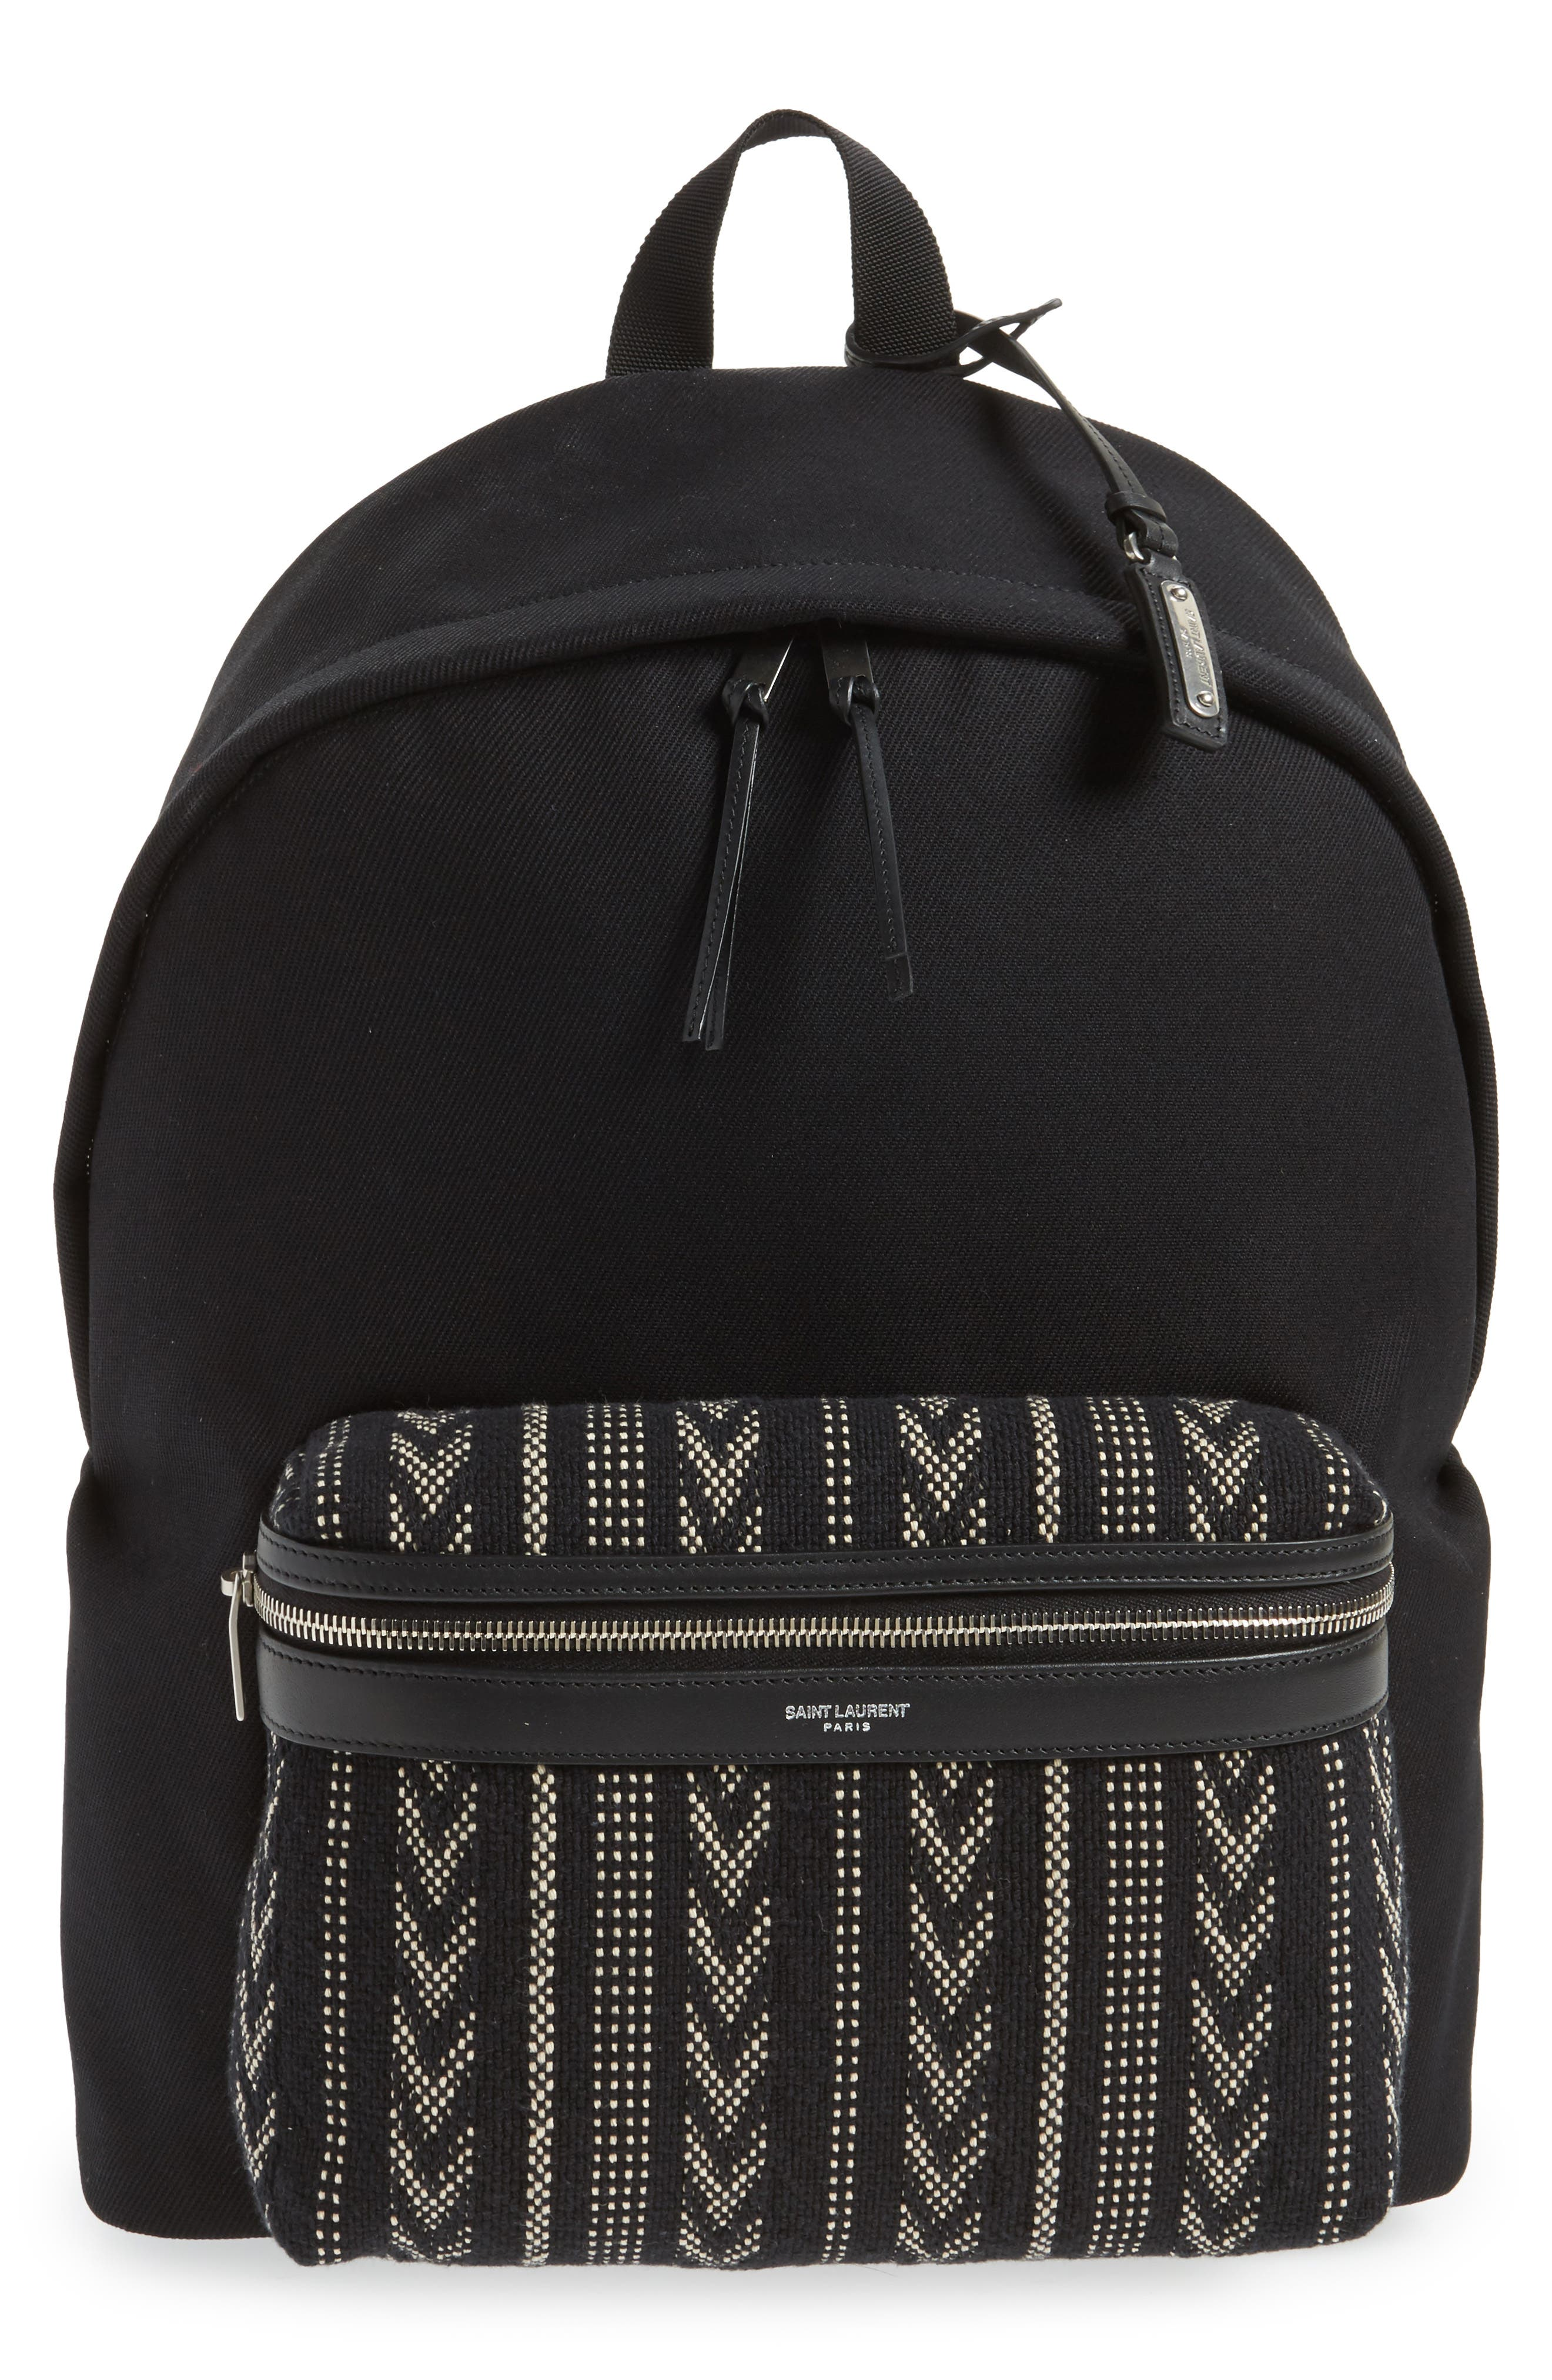 Pattern City Backpack,                         Main,                         color, Black/ White